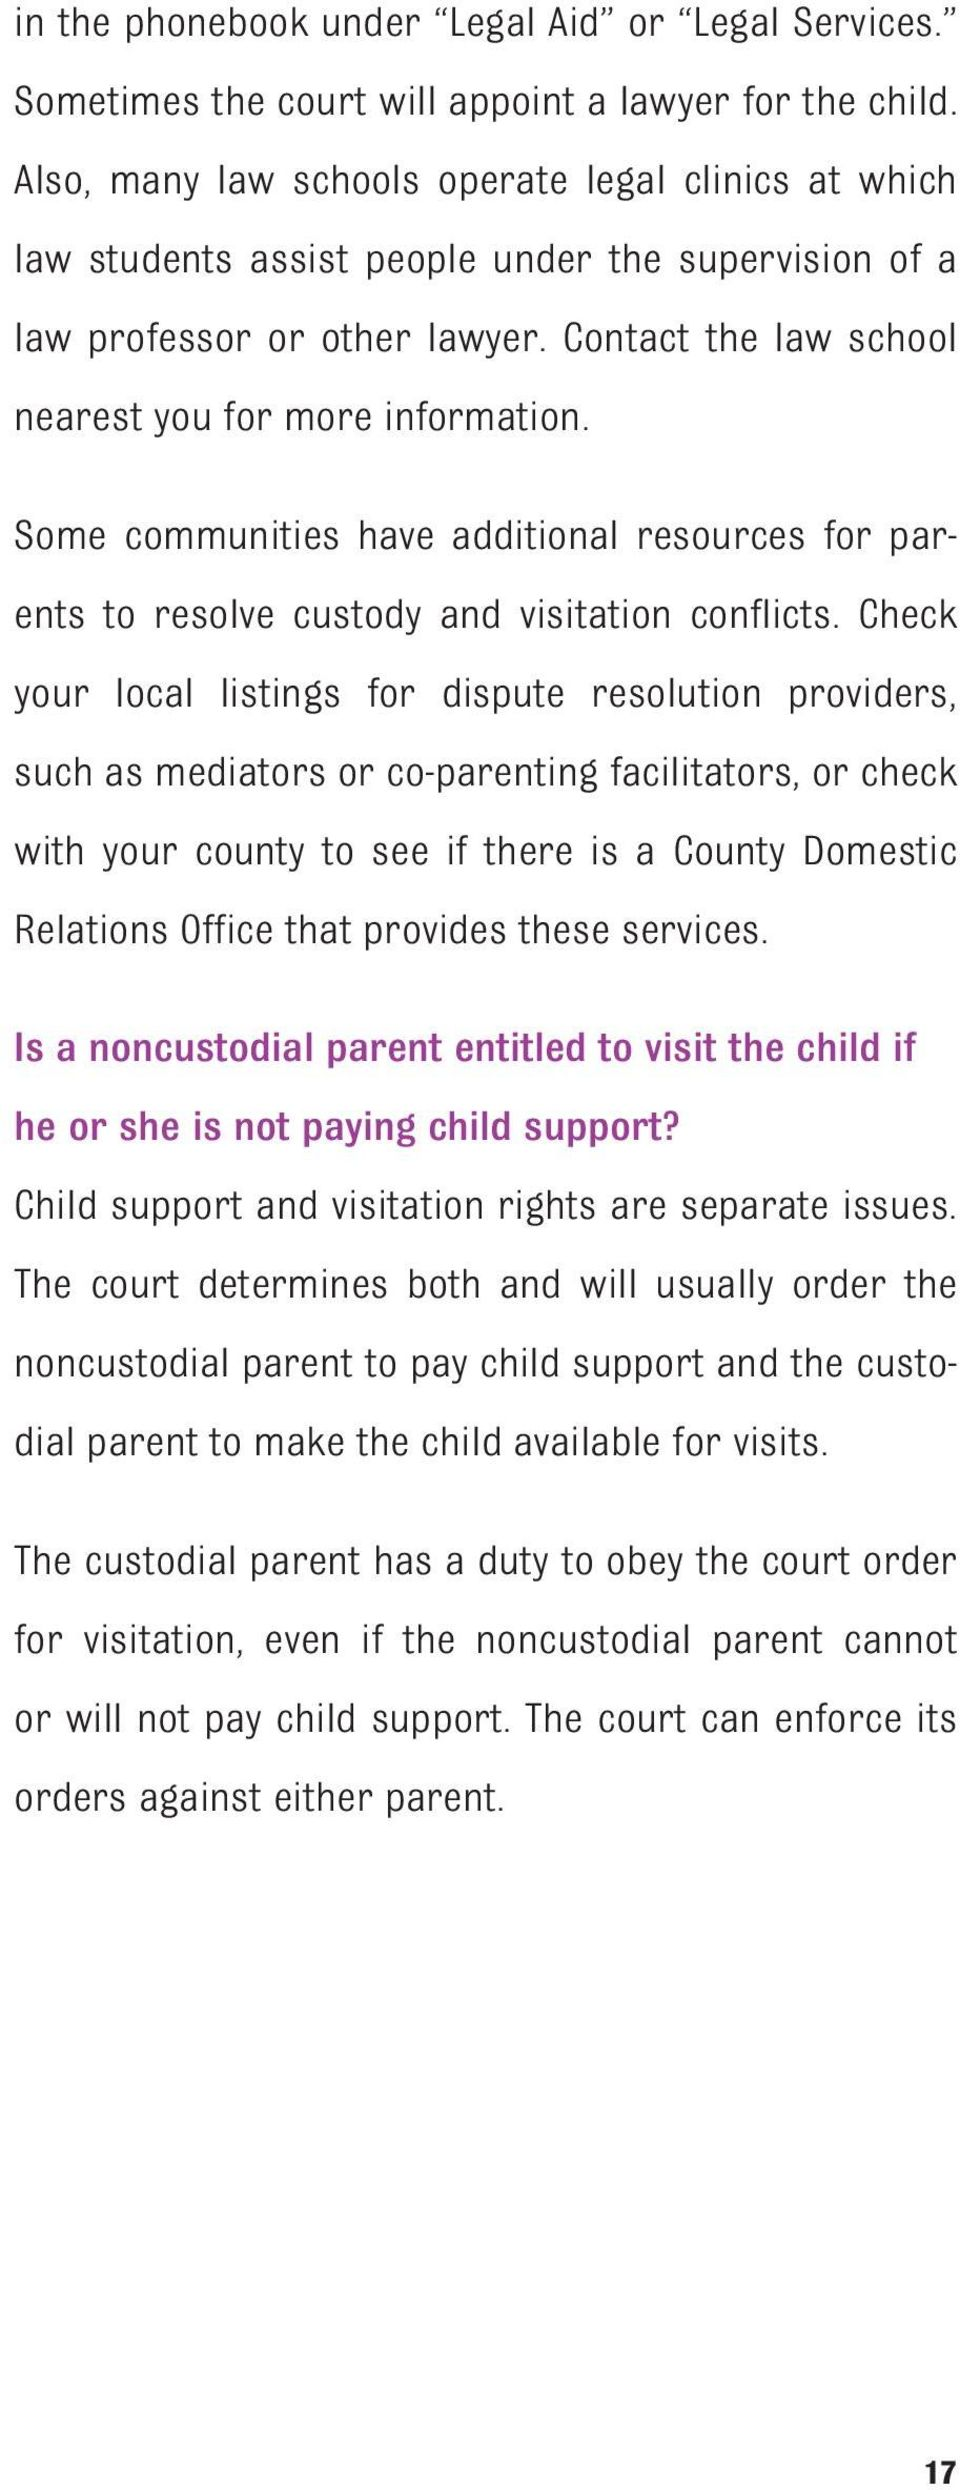 Some communities have additional resources for parents to resolve custody and visitation conflicts.